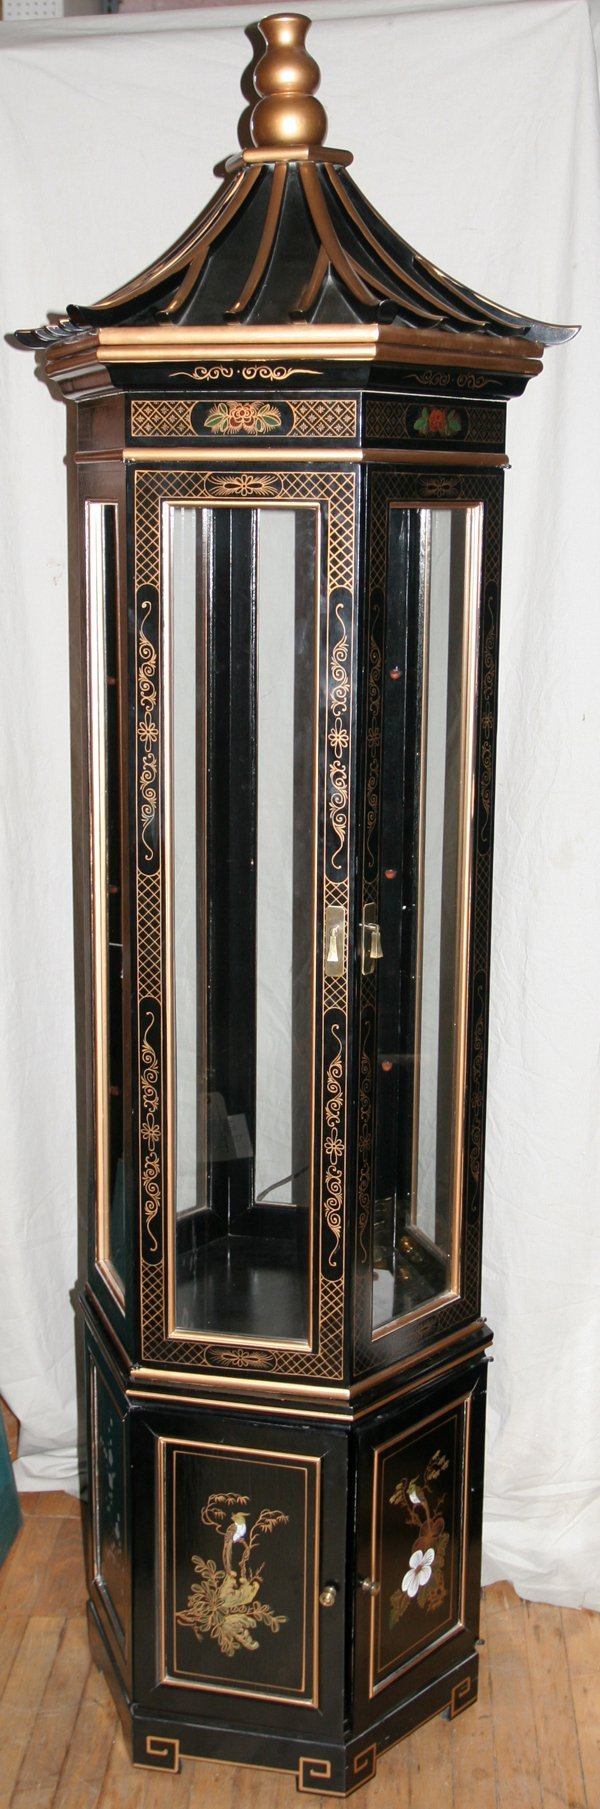 100087 chinoiserie black lacquered curio cabinet lot 100087